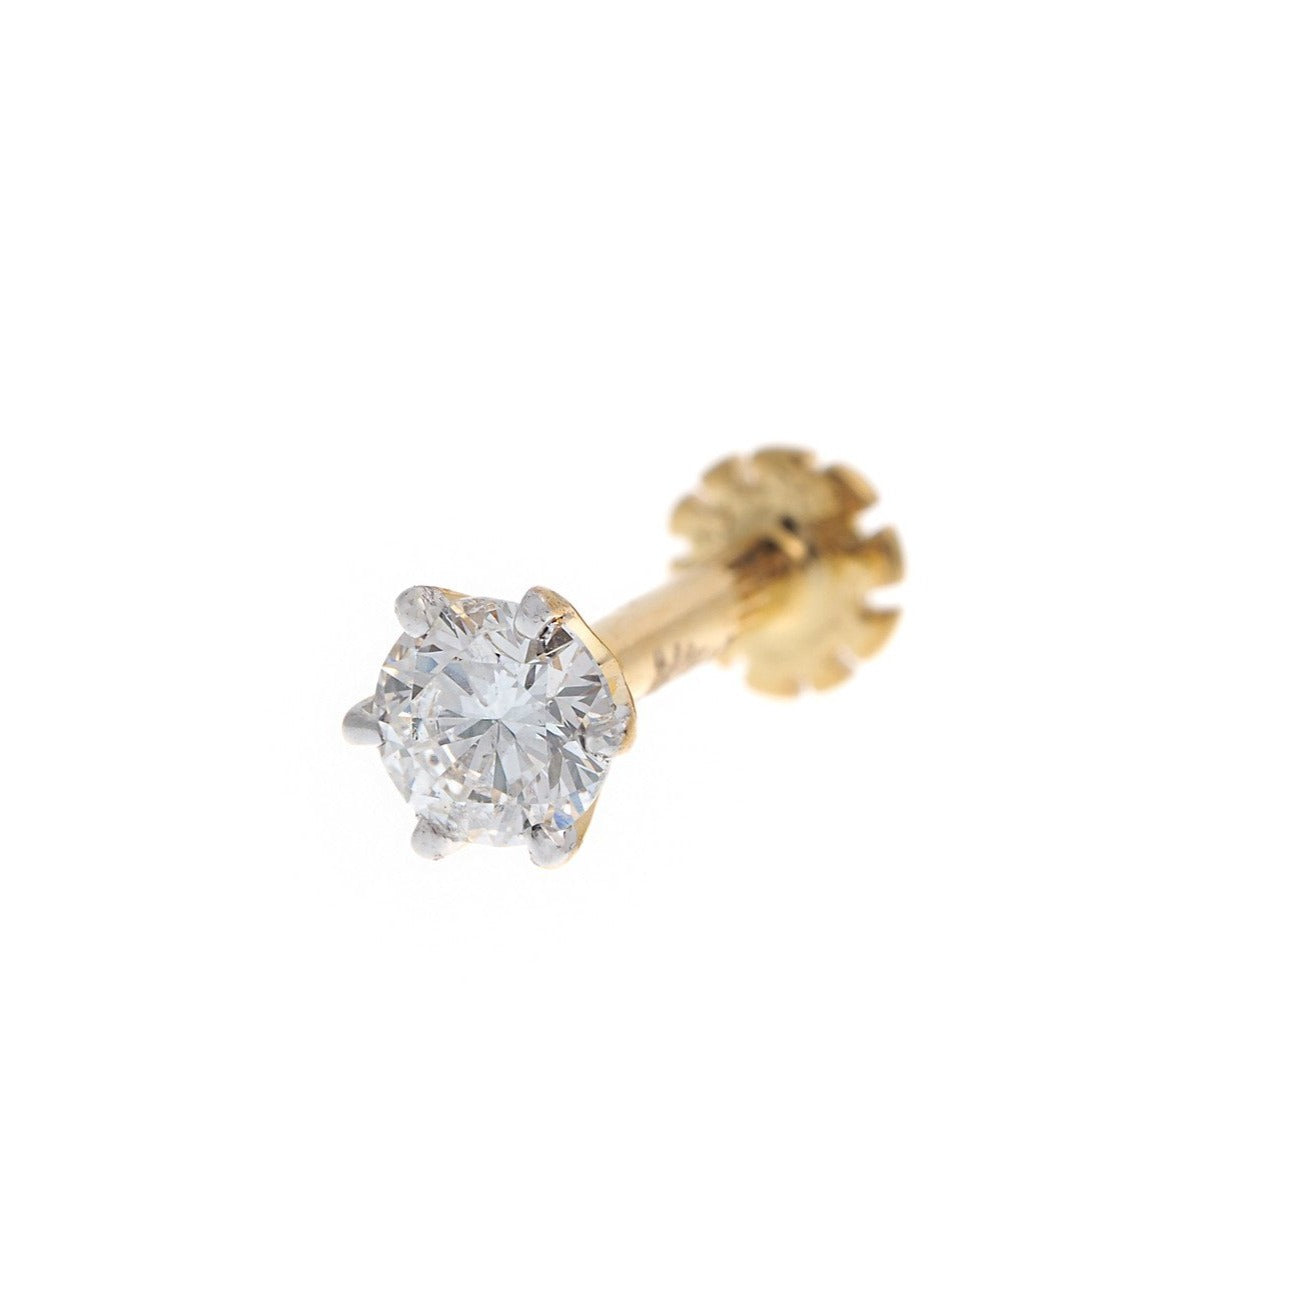 18ct White / Yellow Gold 0.15ct Diamond Screw Back Nose Stud, Minar Jewellers - 2